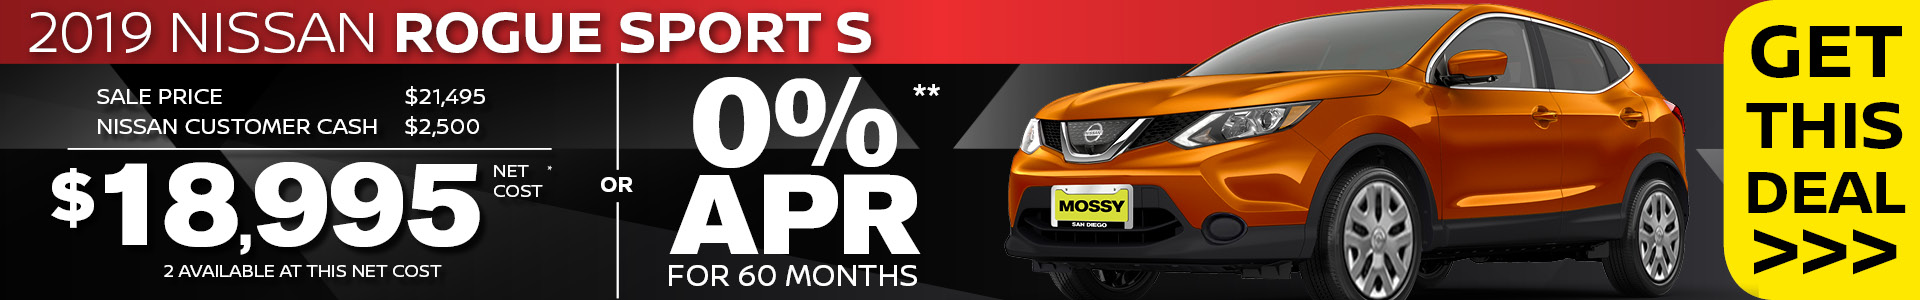 Mossy Nissan - Nissan Rogue Sport $18,995 Purchase SRP